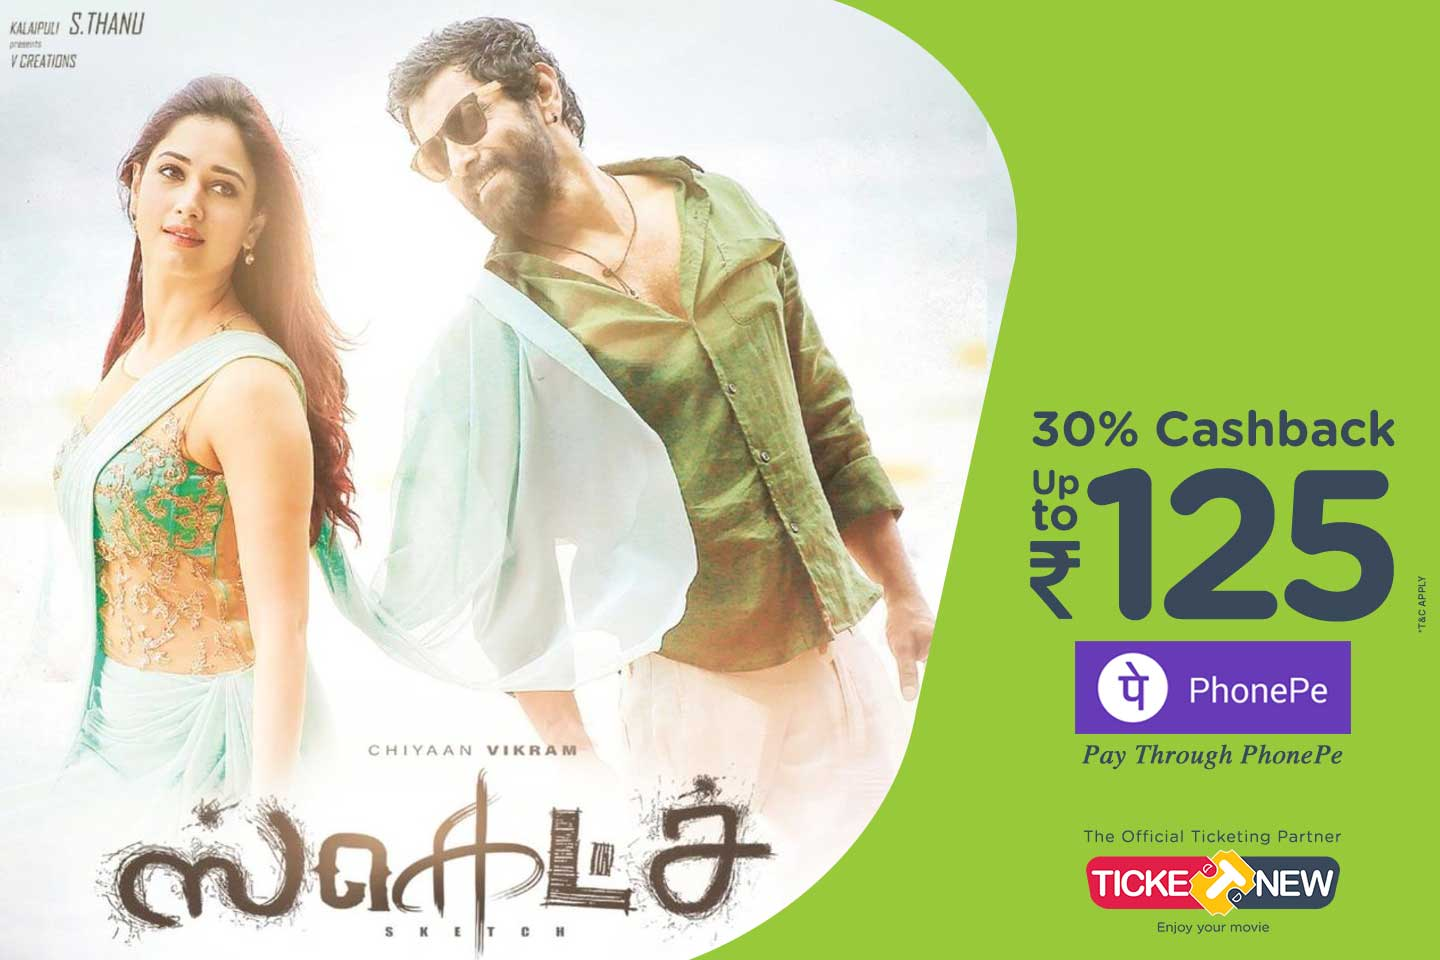 http://www.ticketnew.com/Movie-offers-Tickets-Online-Booking-Show-Timings/latest-offers/tkt_sketch_off